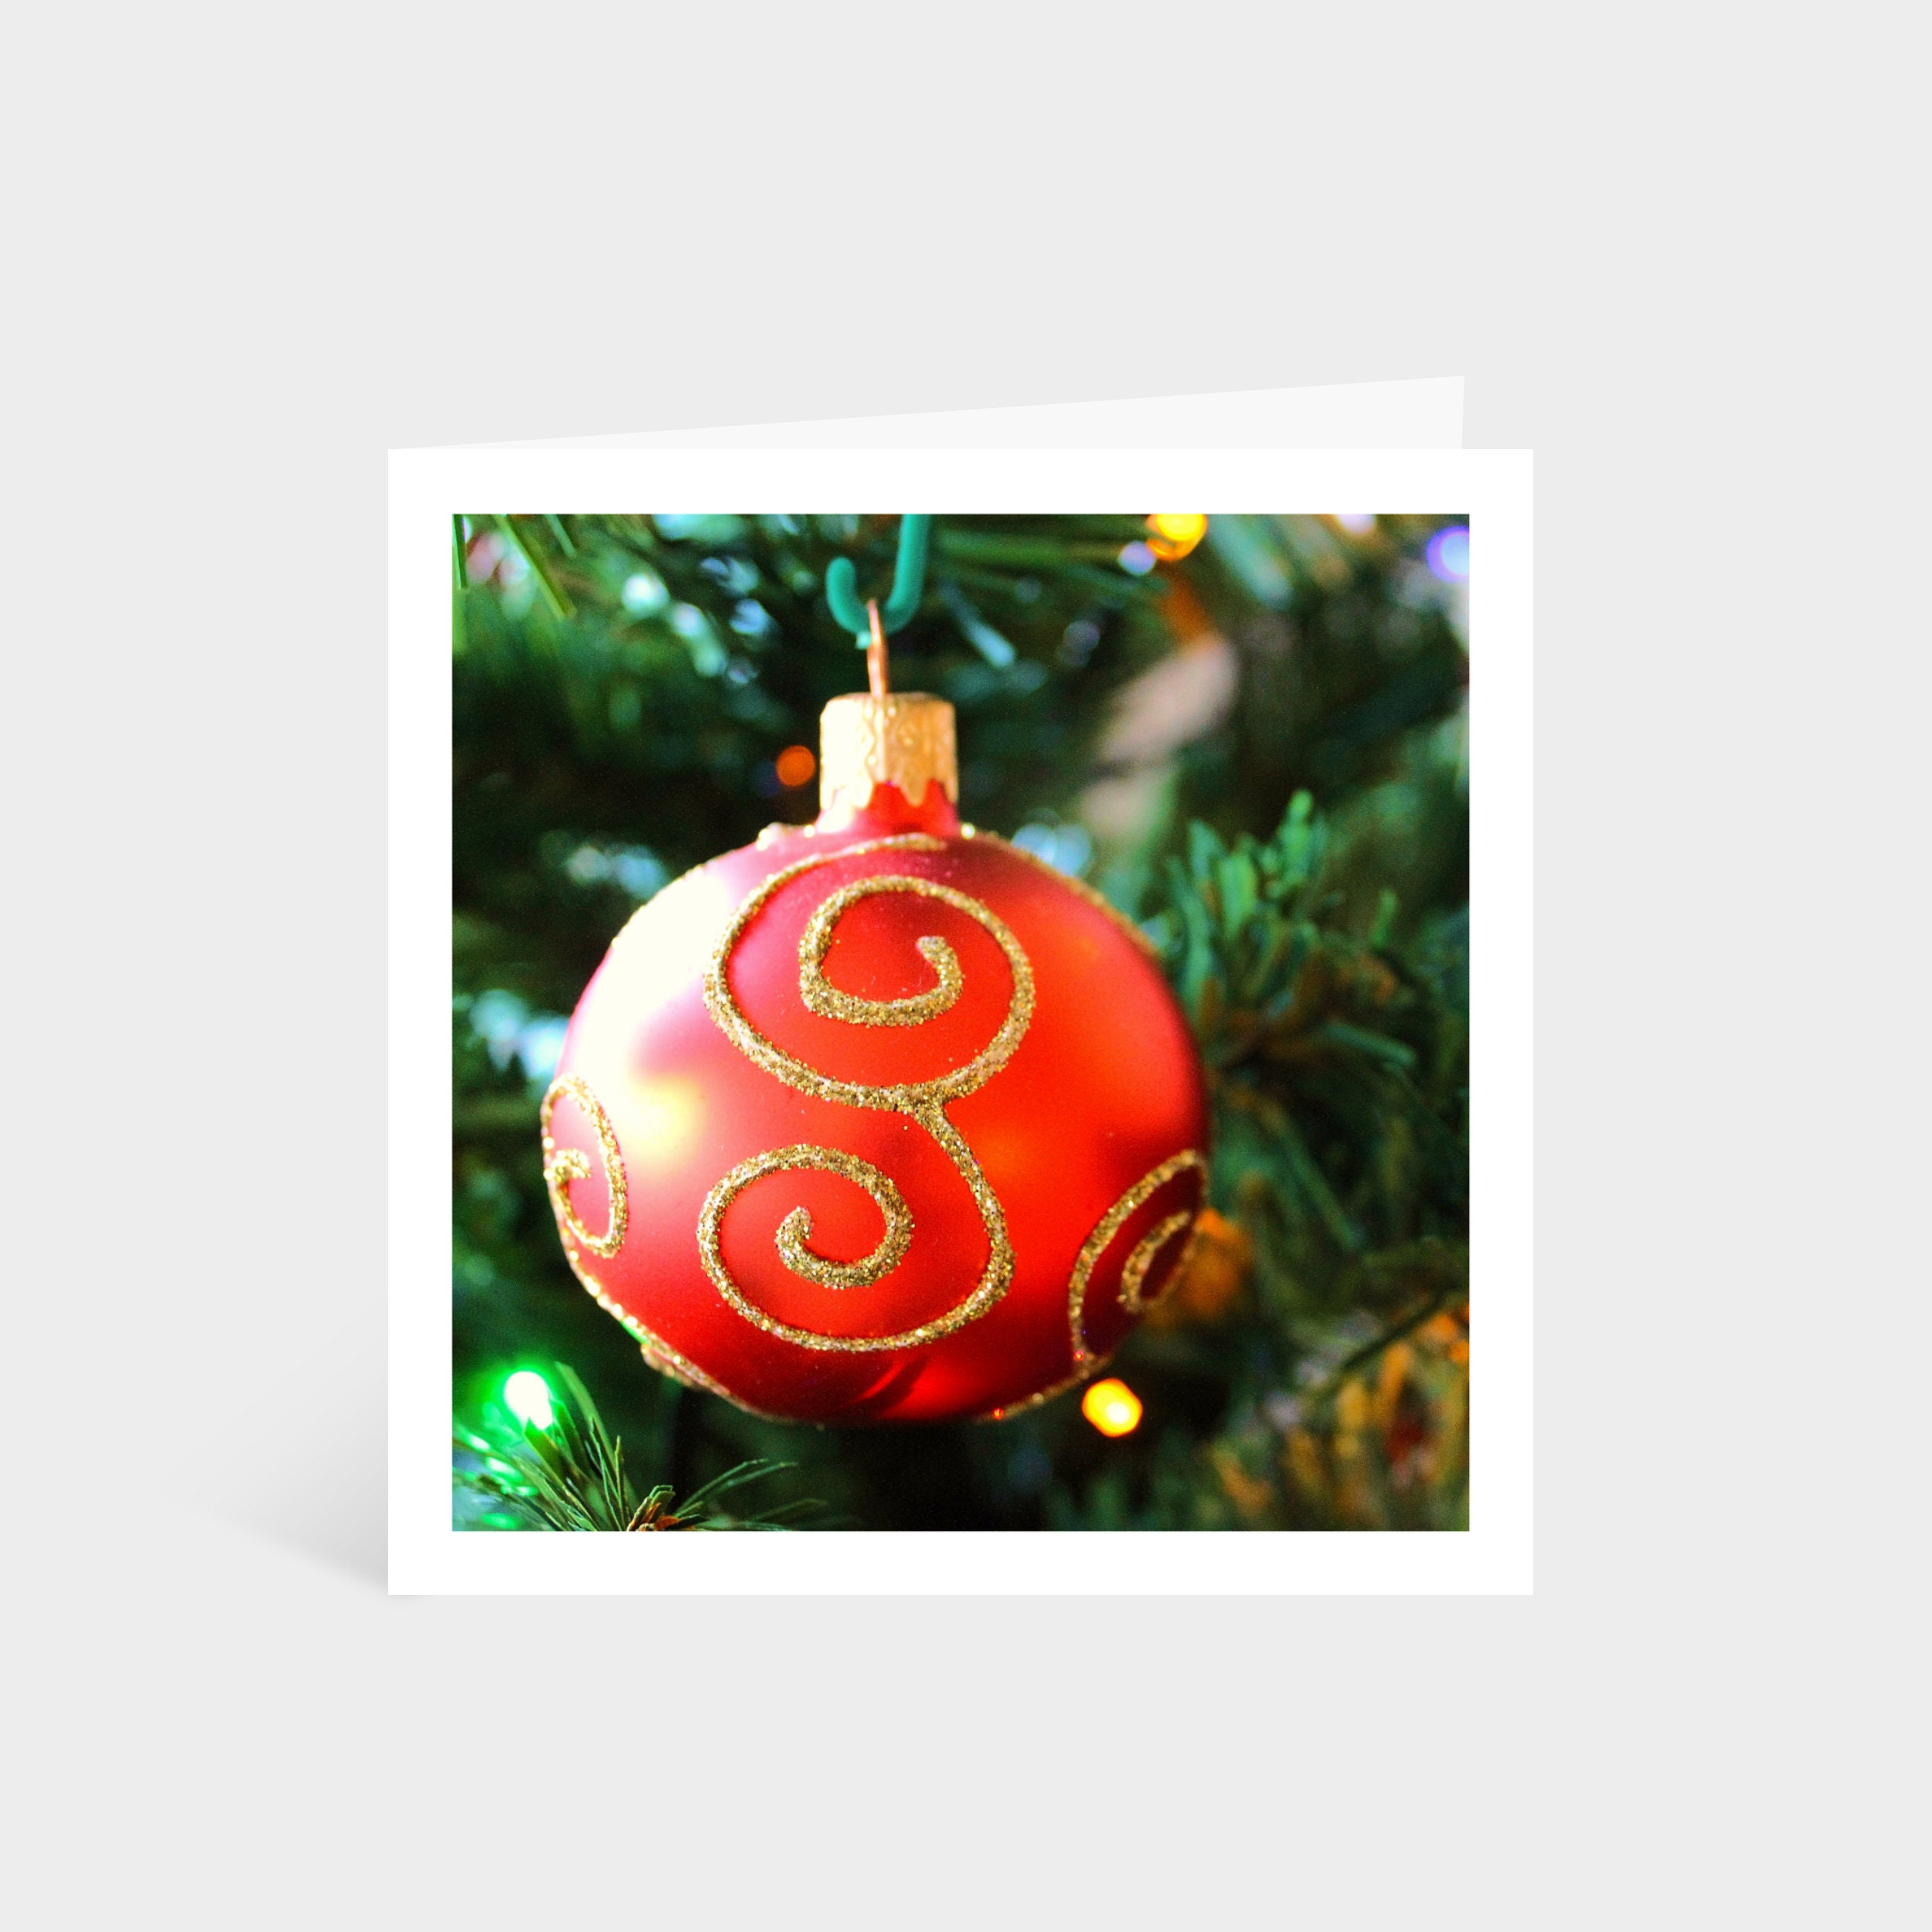 Standing square card with a close-up photo of a red and gold bauble hanging on a Christmas tree